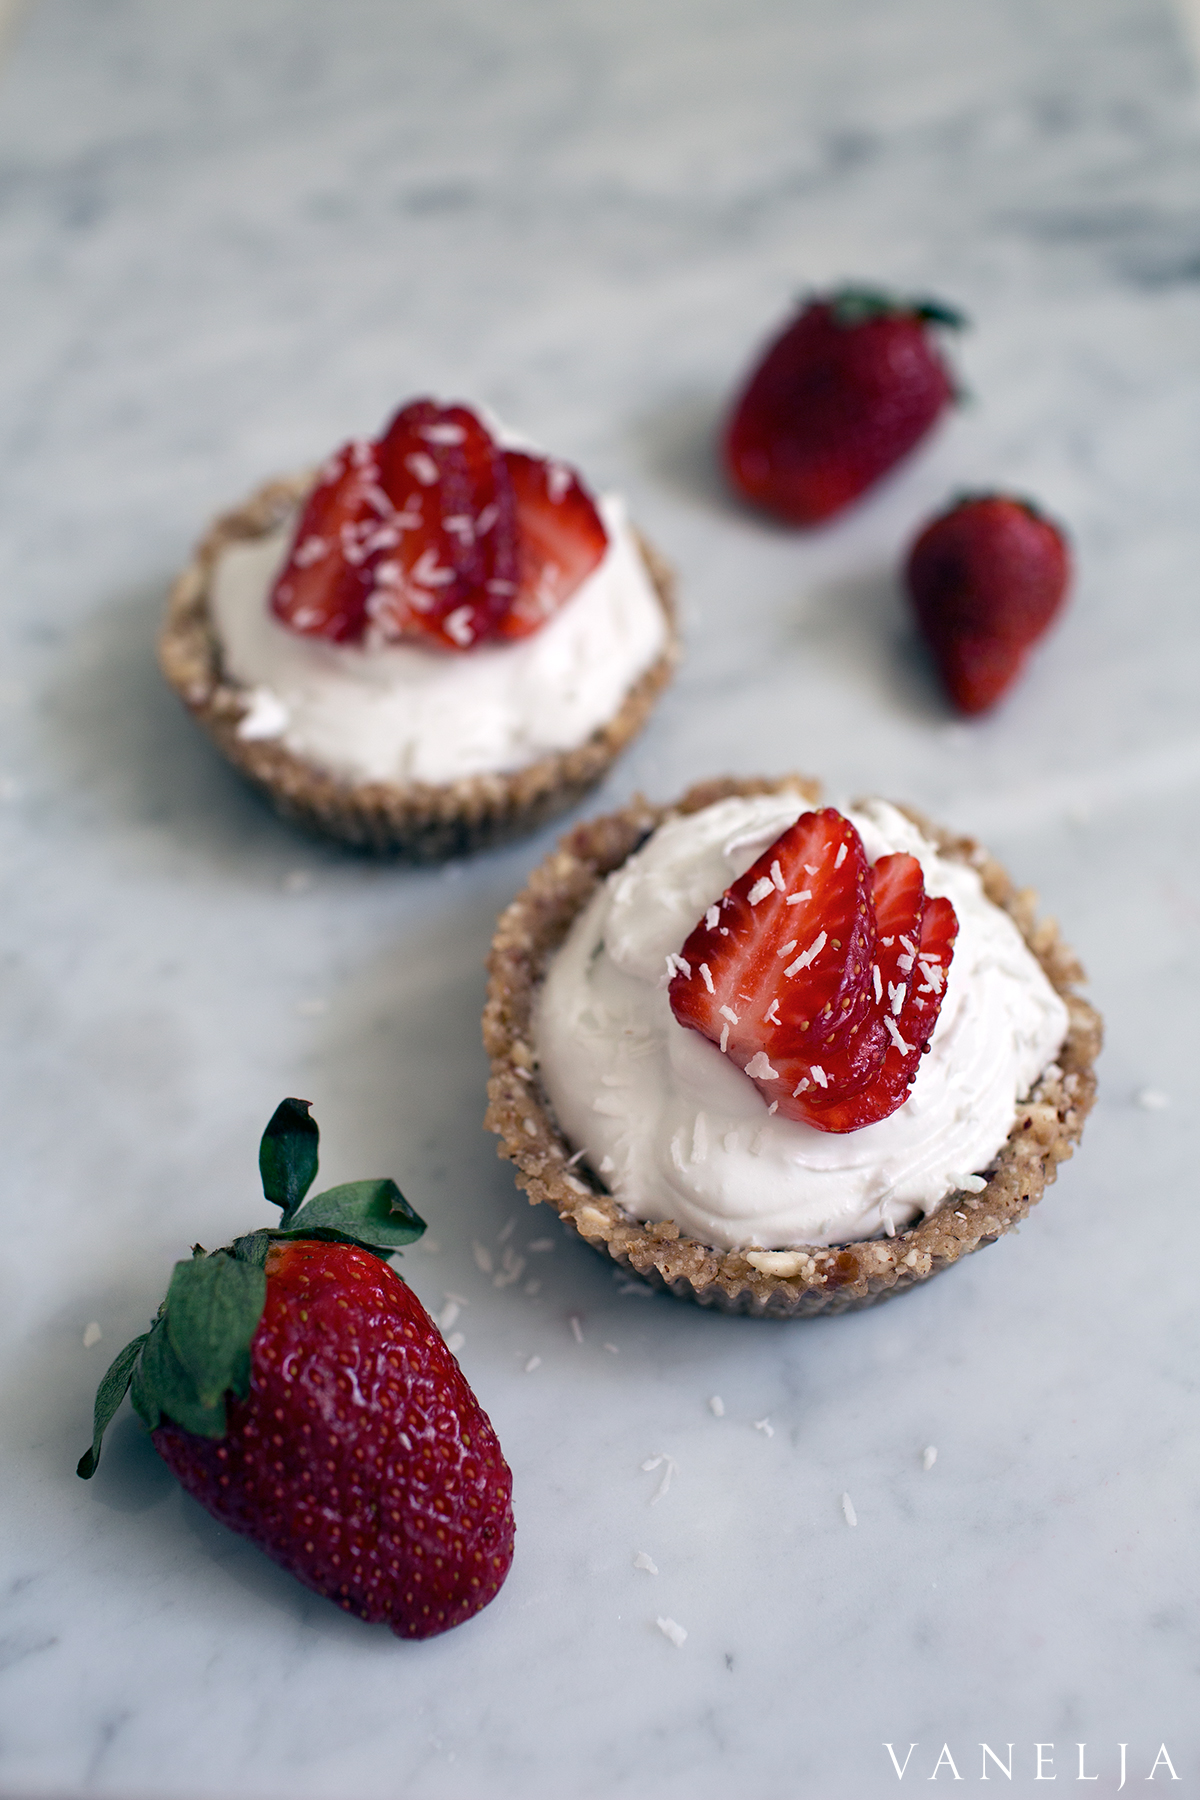 Strawberries and Rose cream mini tarts